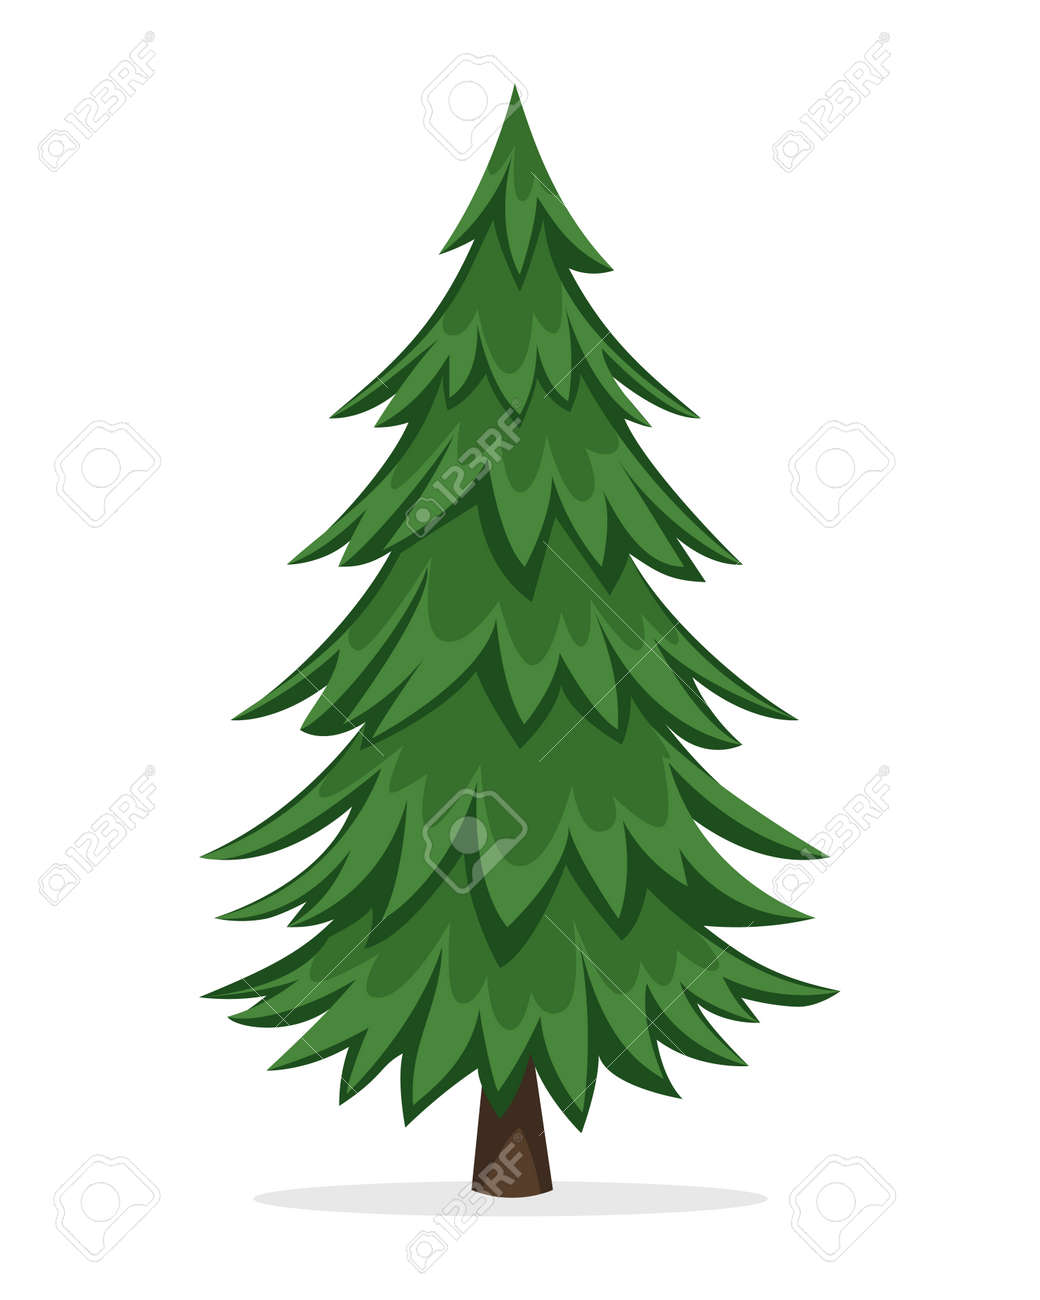 cartoon pine tree royalty free cliparts vectors and stock rh 123rf com pine tree vector free pine tree vector art